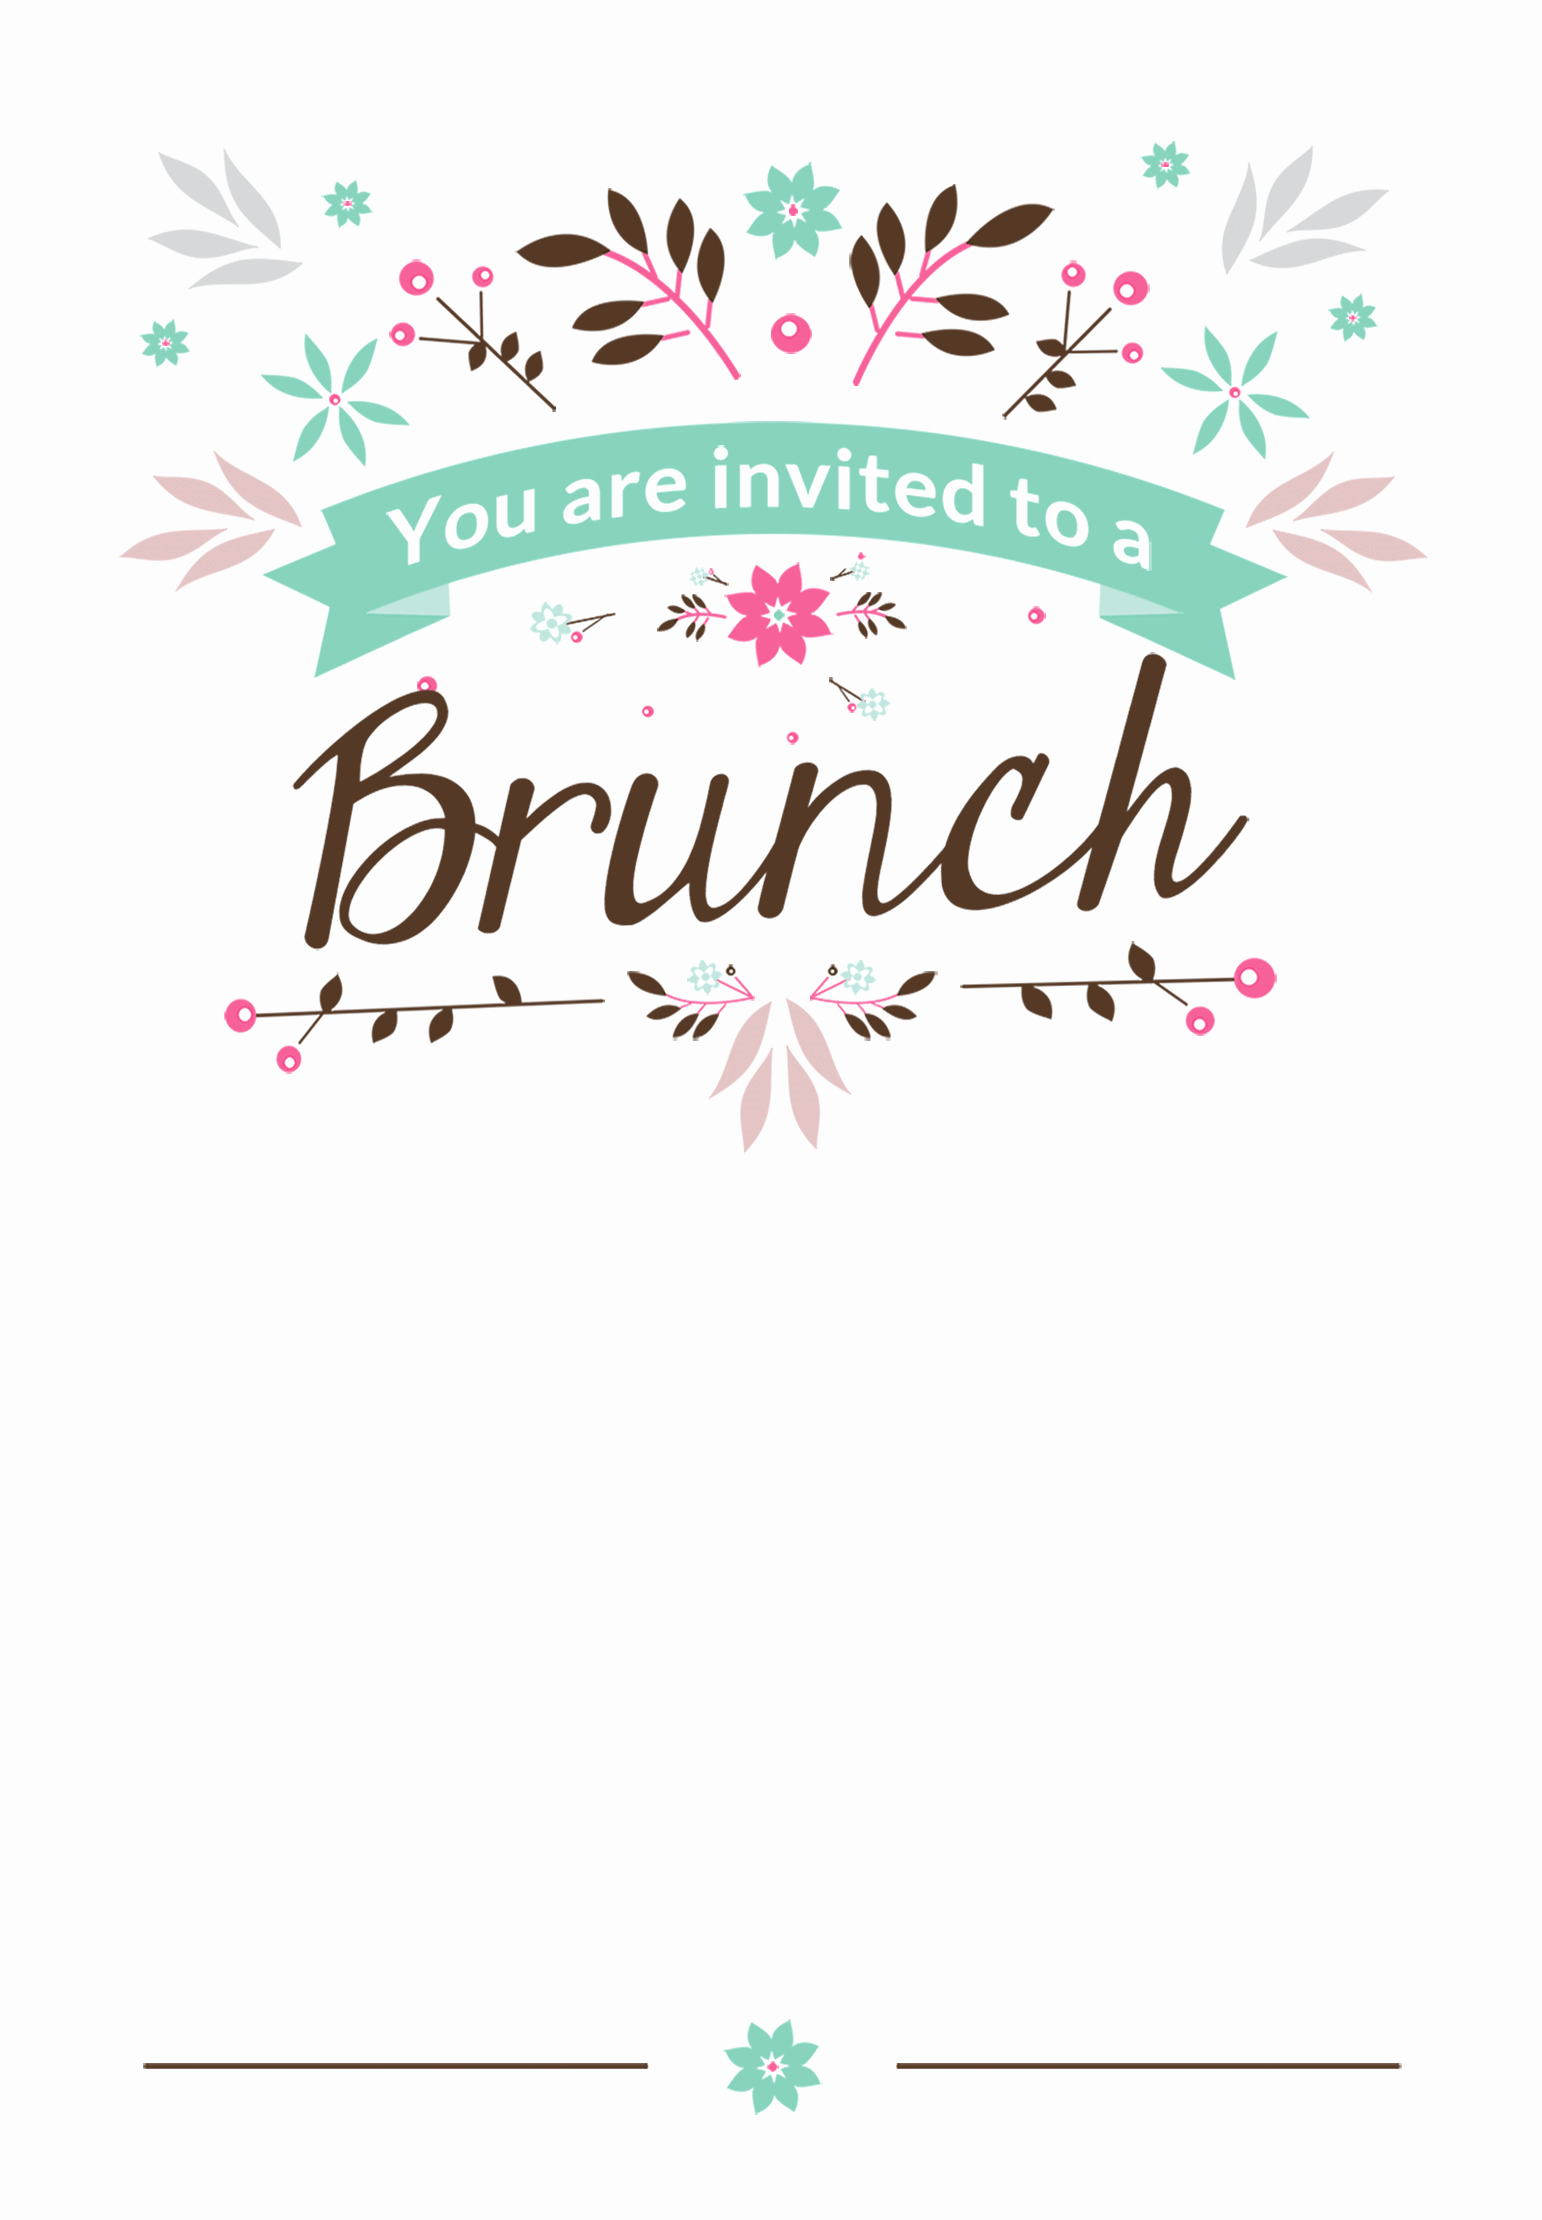 Free Printable Christmas Invitation Templates Fresh Flat Floral Free Printable Brunch Invitation Template